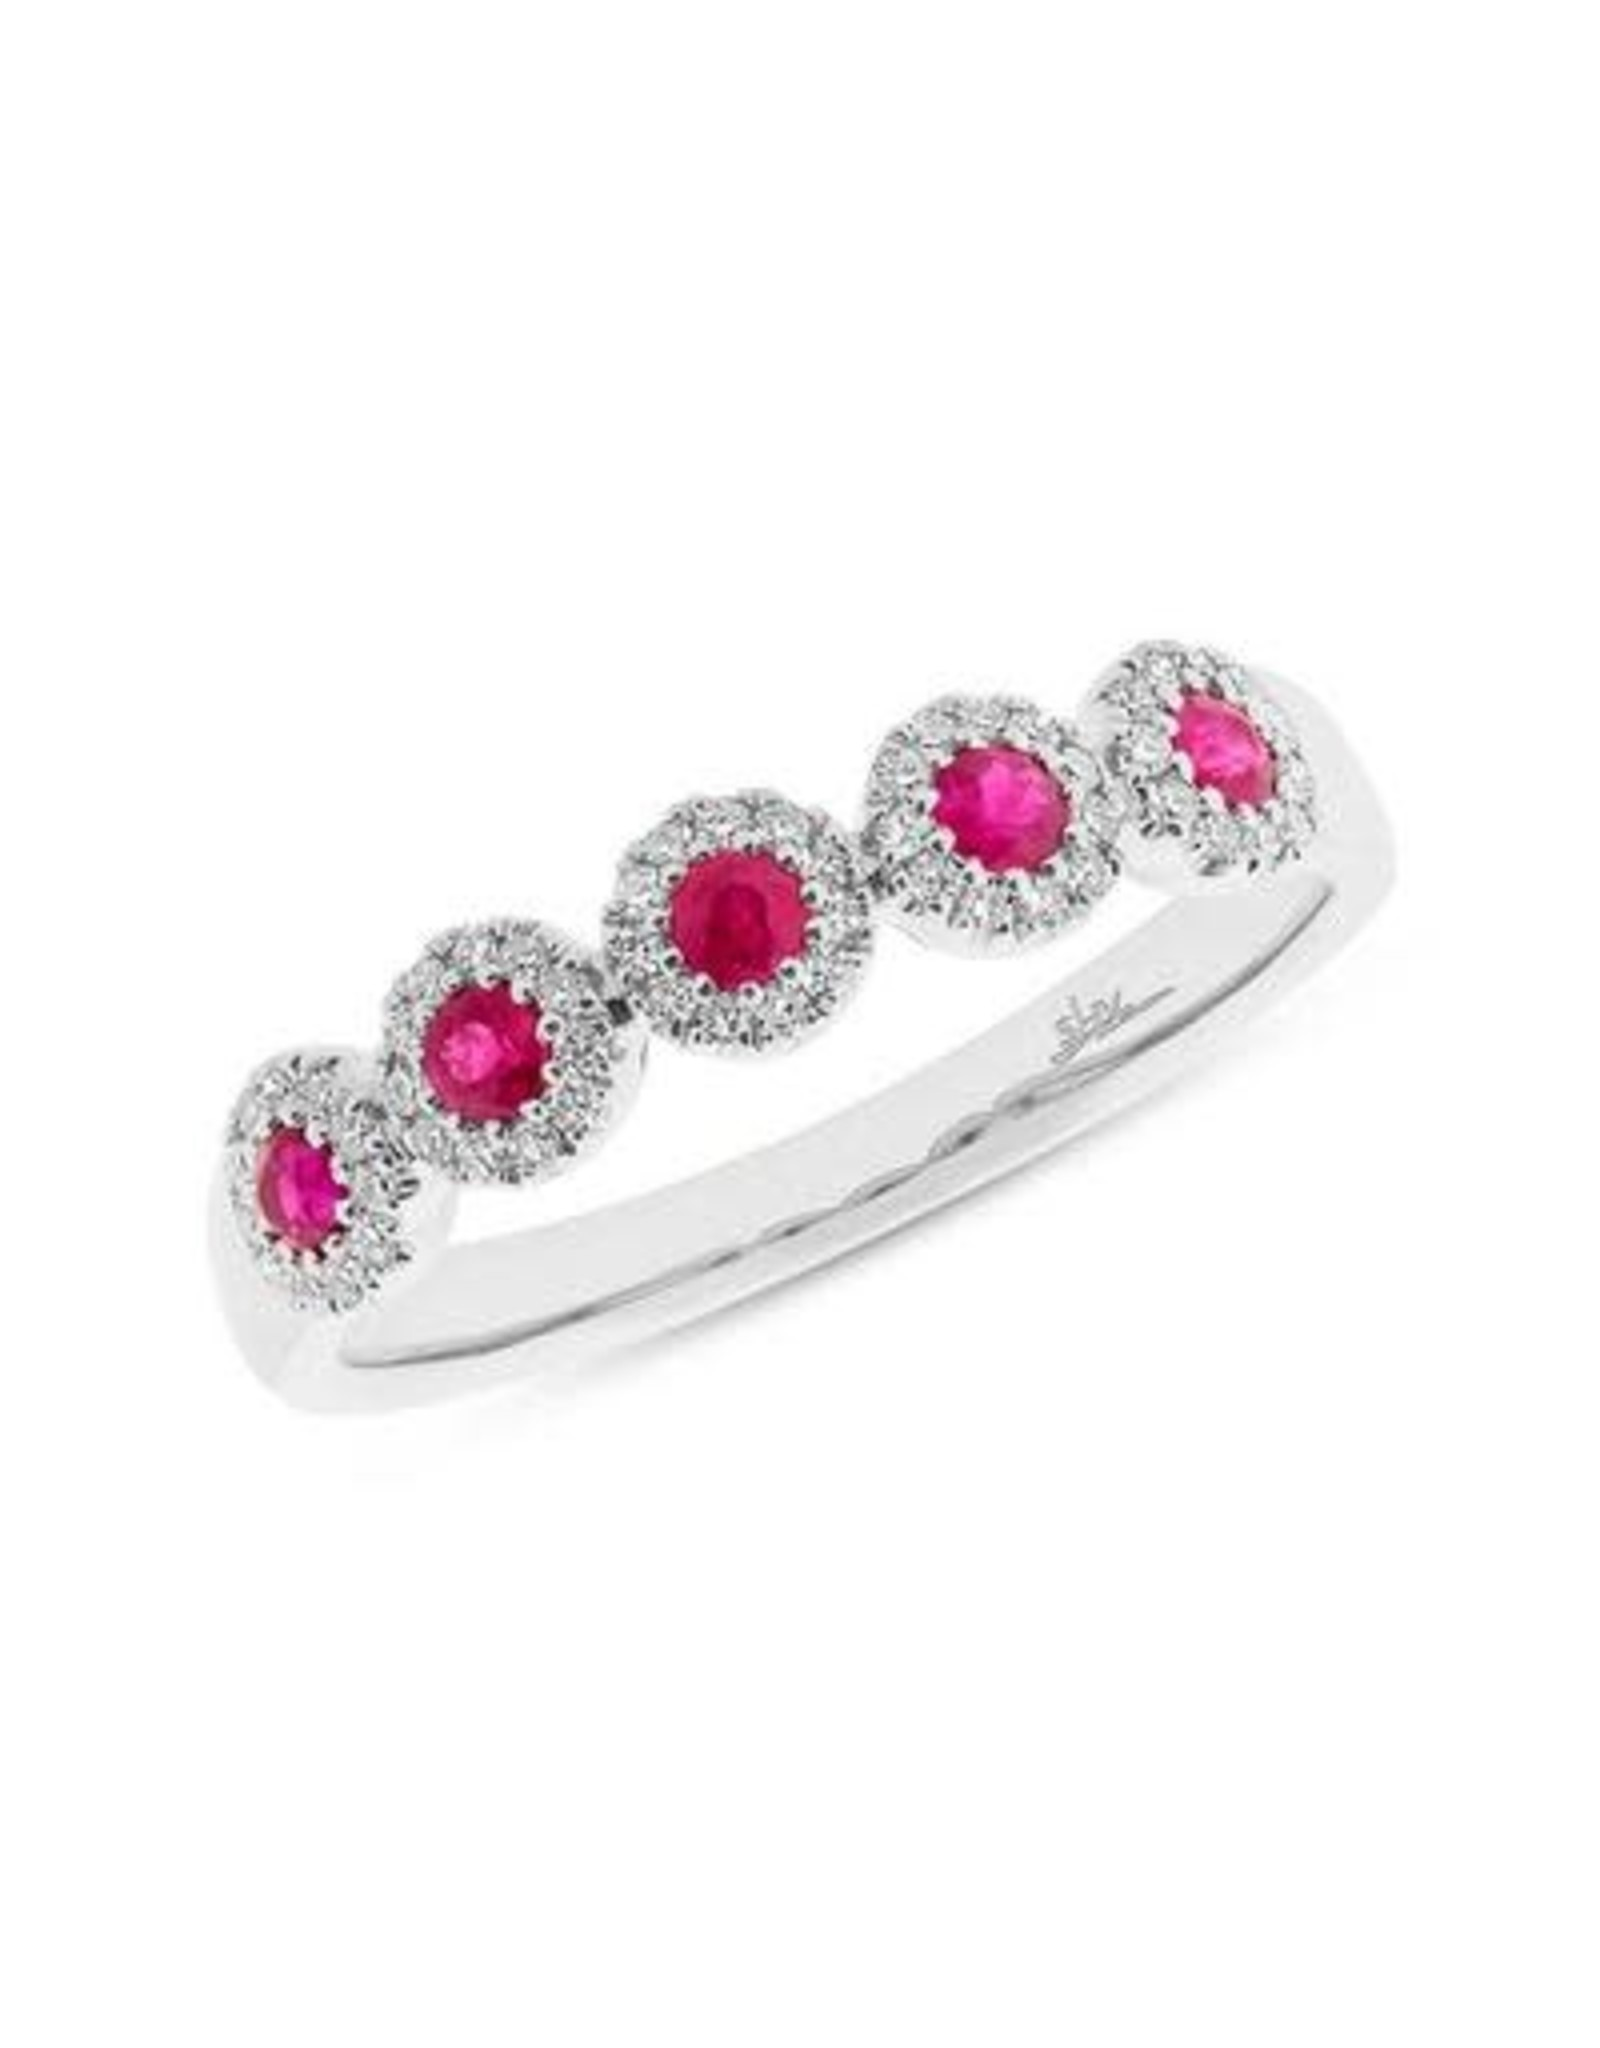 14K White Gold Ruby and Diamond 5-stone Ring, D: 0.16ct, R: 0.31ct